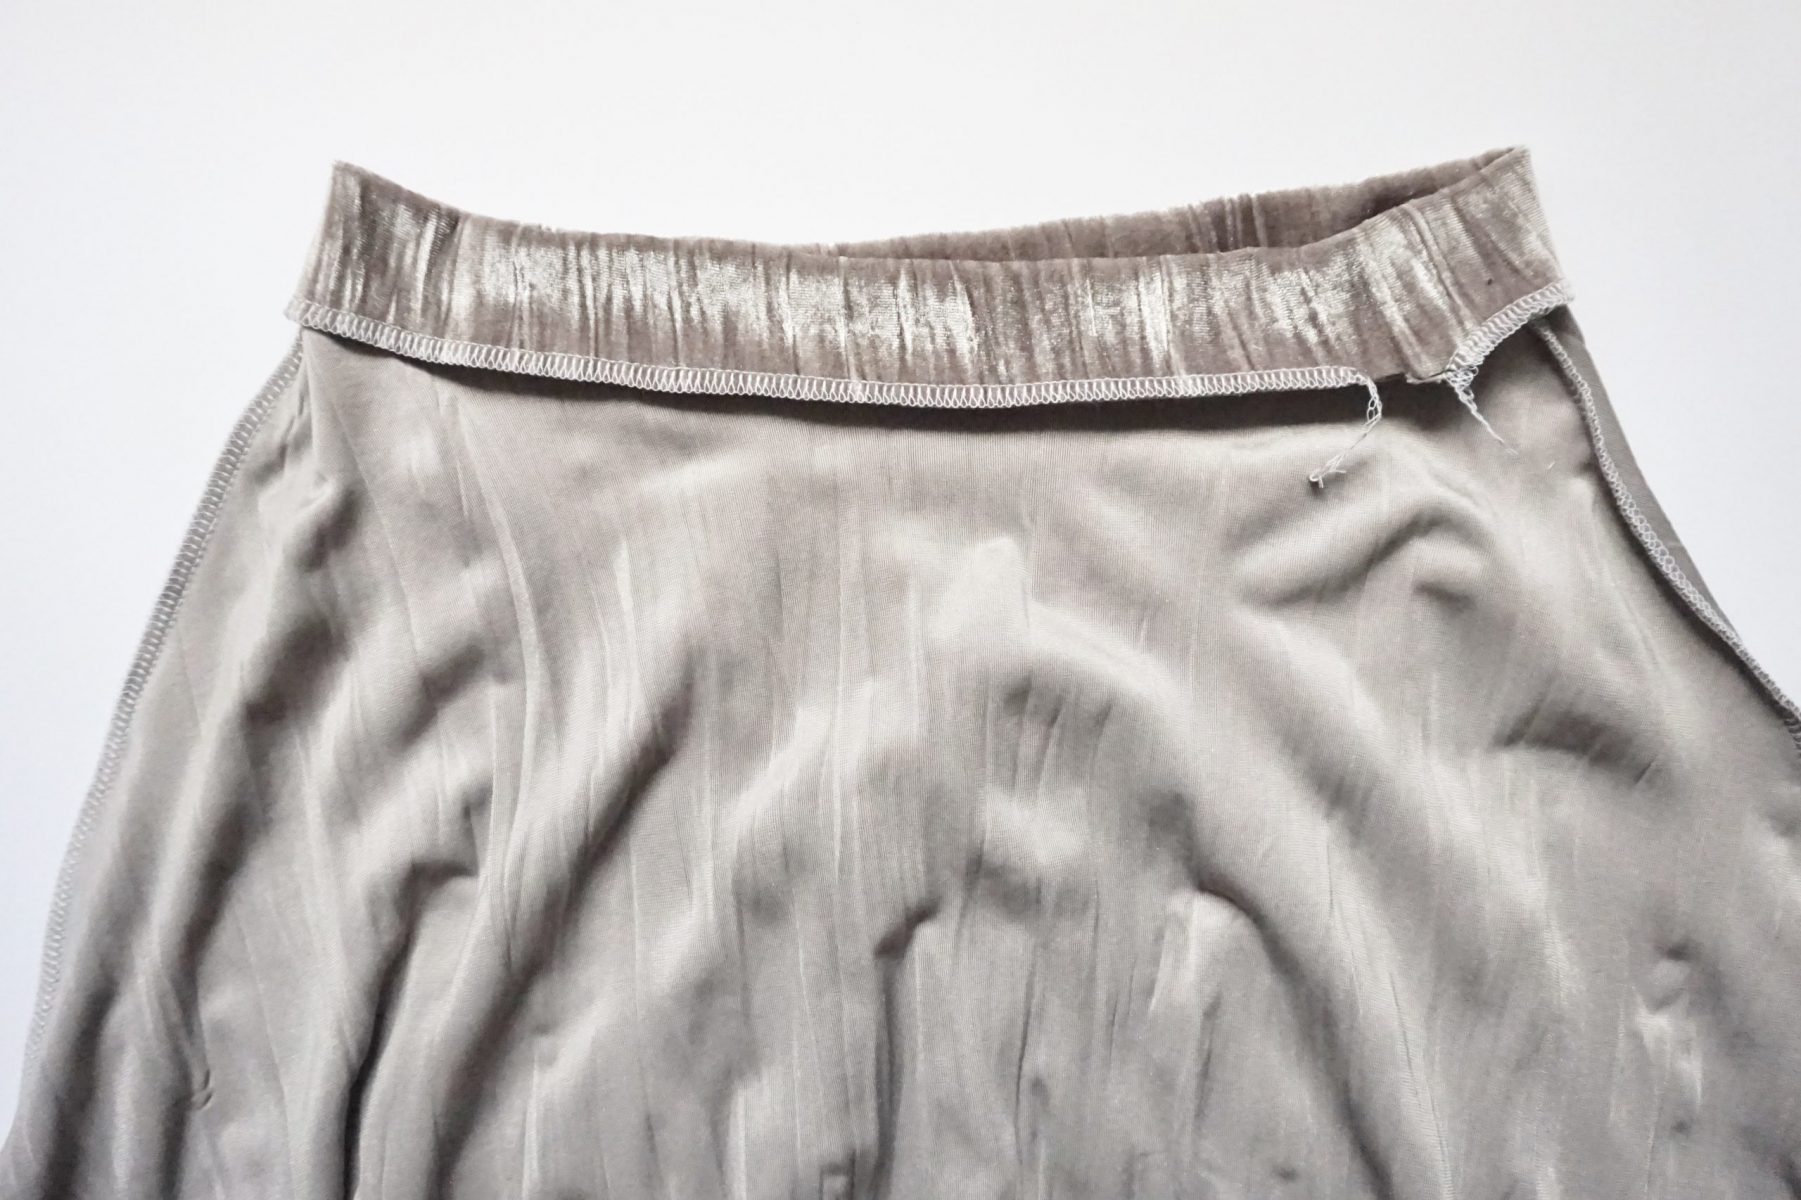 """Sew/serge the waistband to the skirt leaving about a 1-2"""" gap to thread through the elastic."""